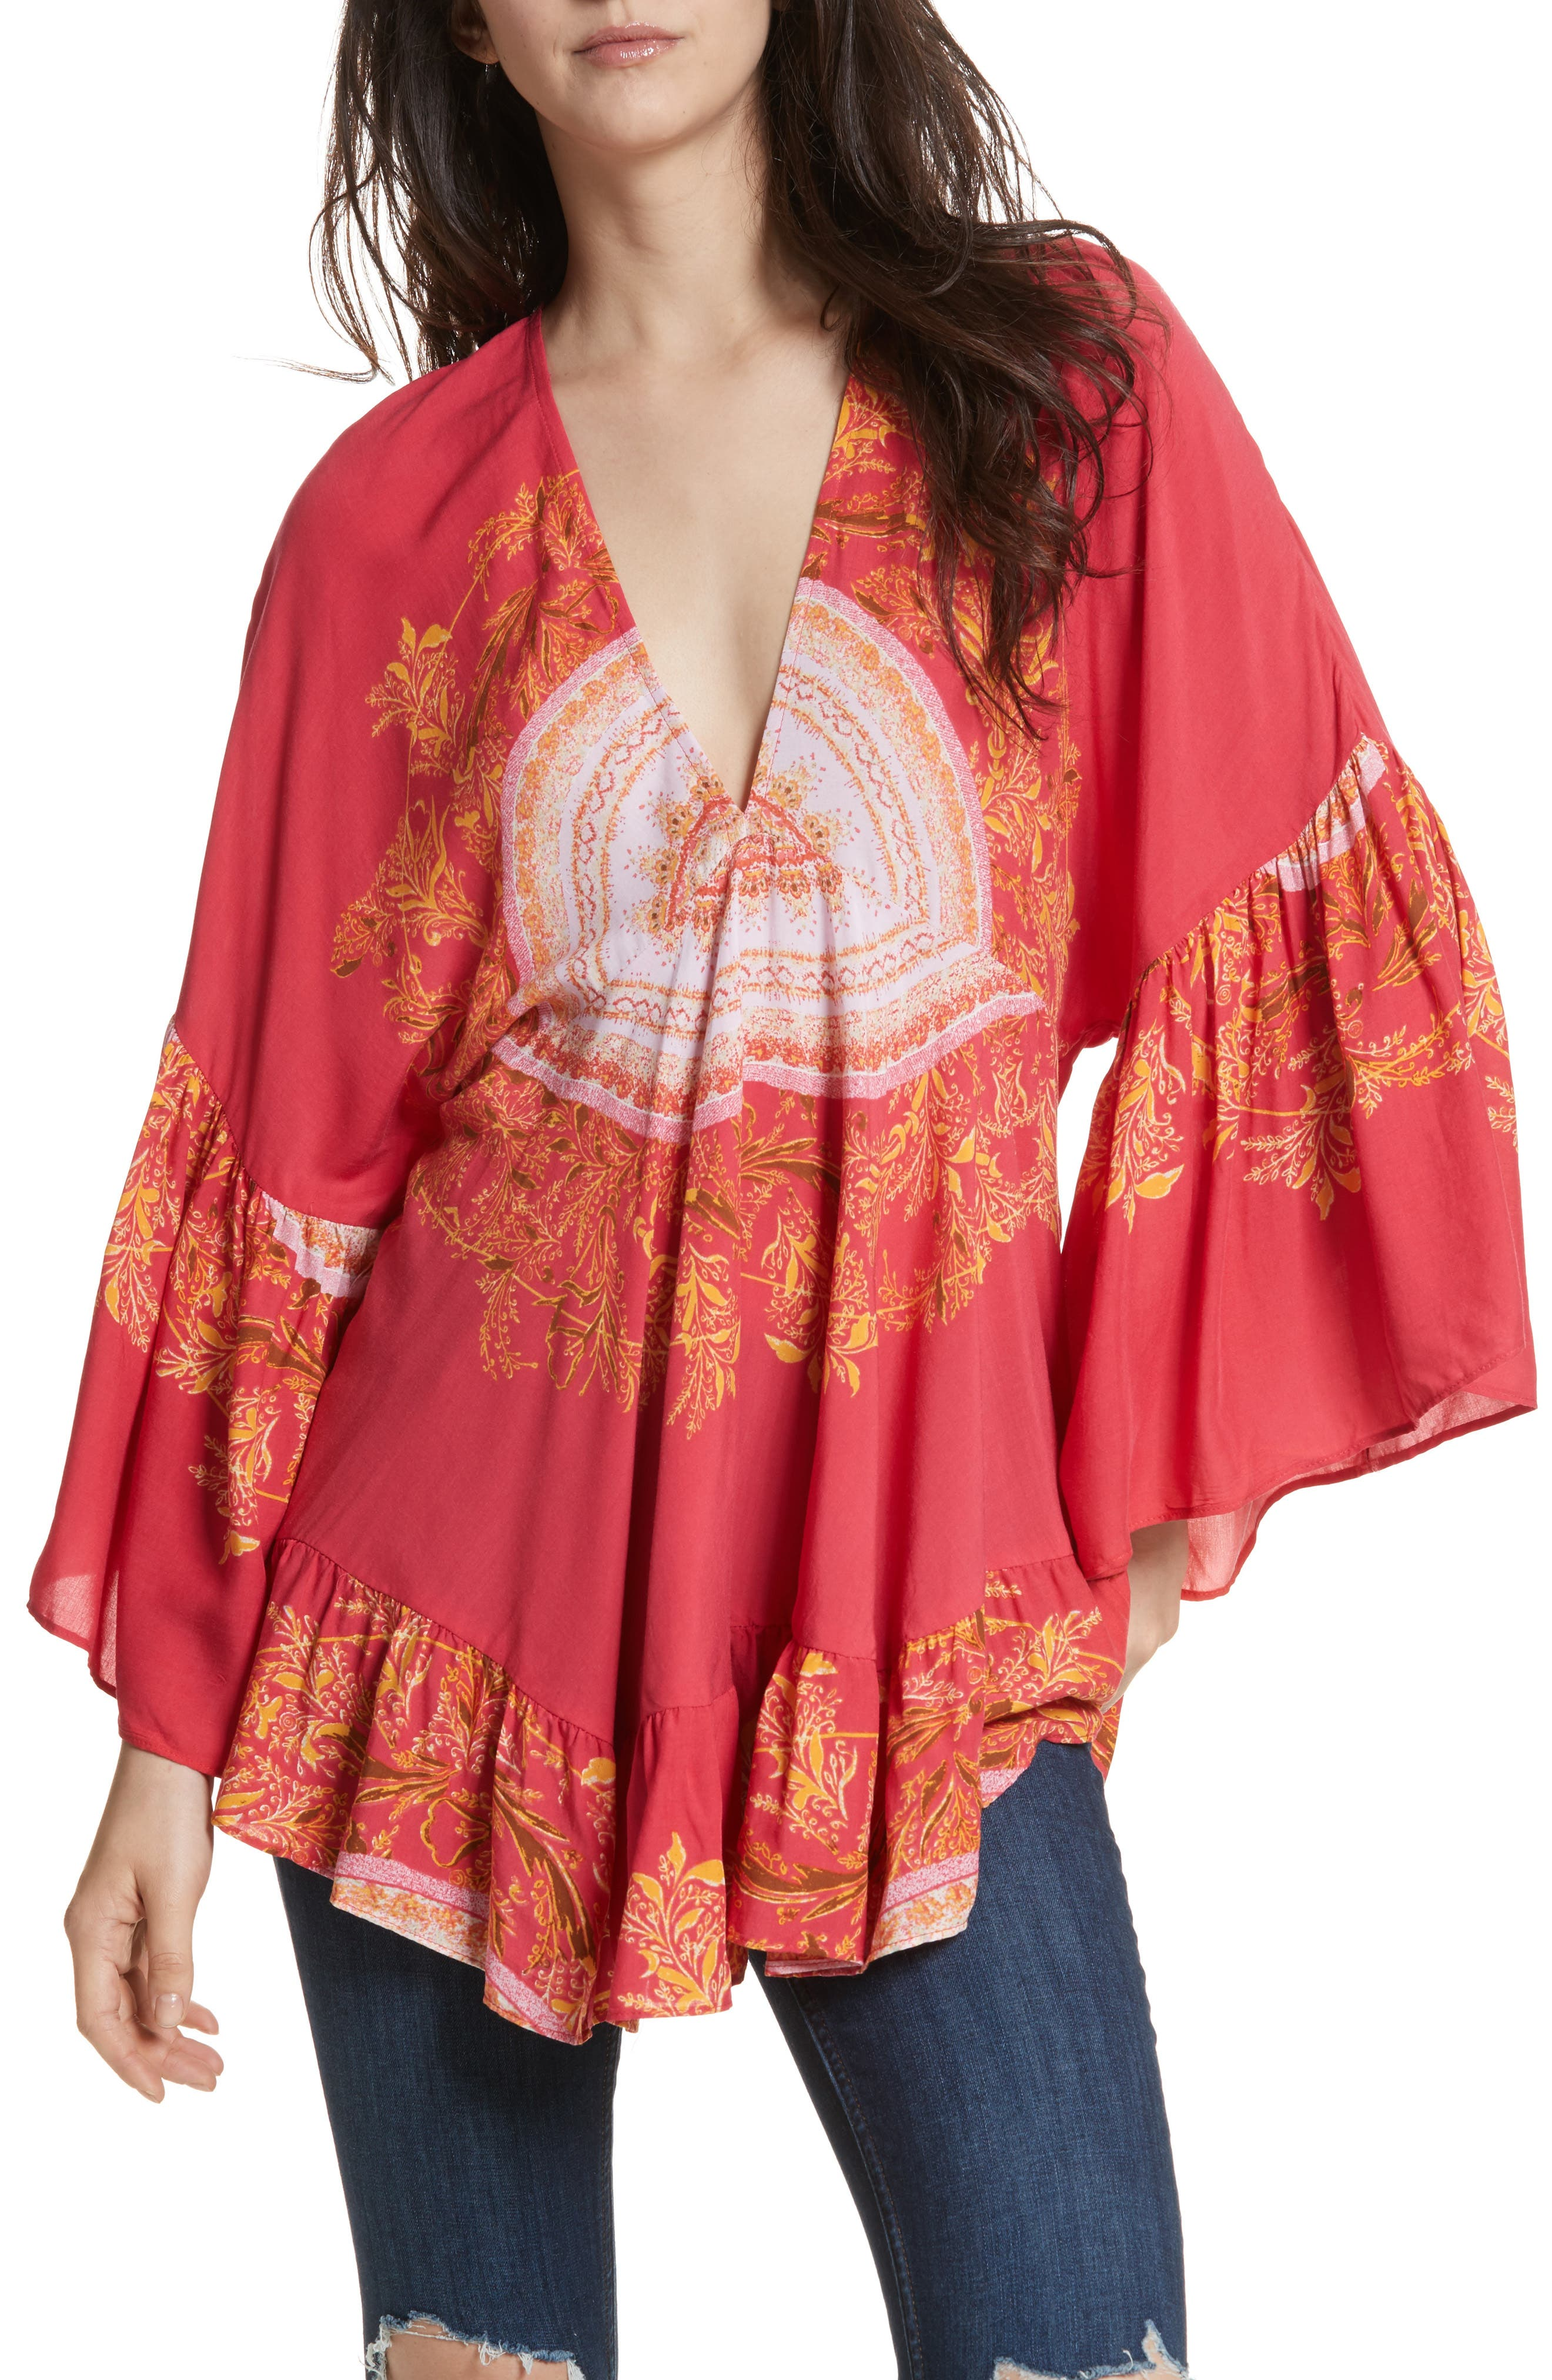 Alternate Image 1 Selected - Free People Sunset Dreams Ruffle Top